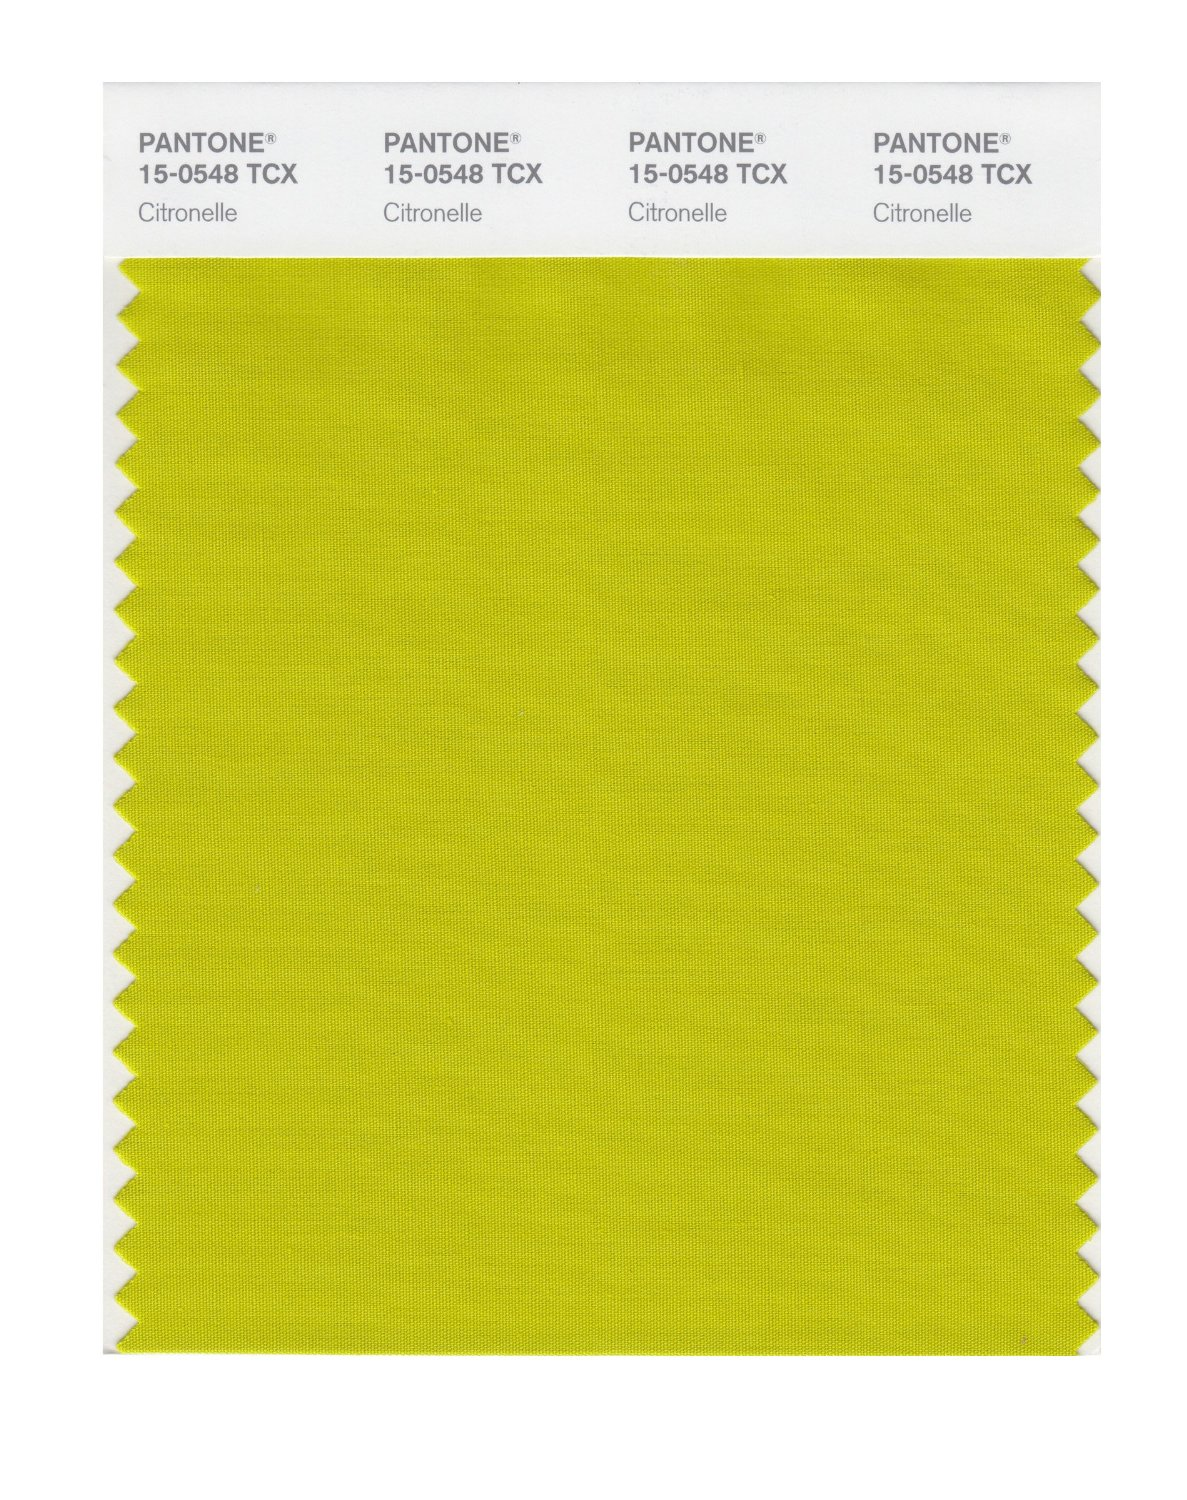 Pantone Smart Swatch 15-0548 Citronelle